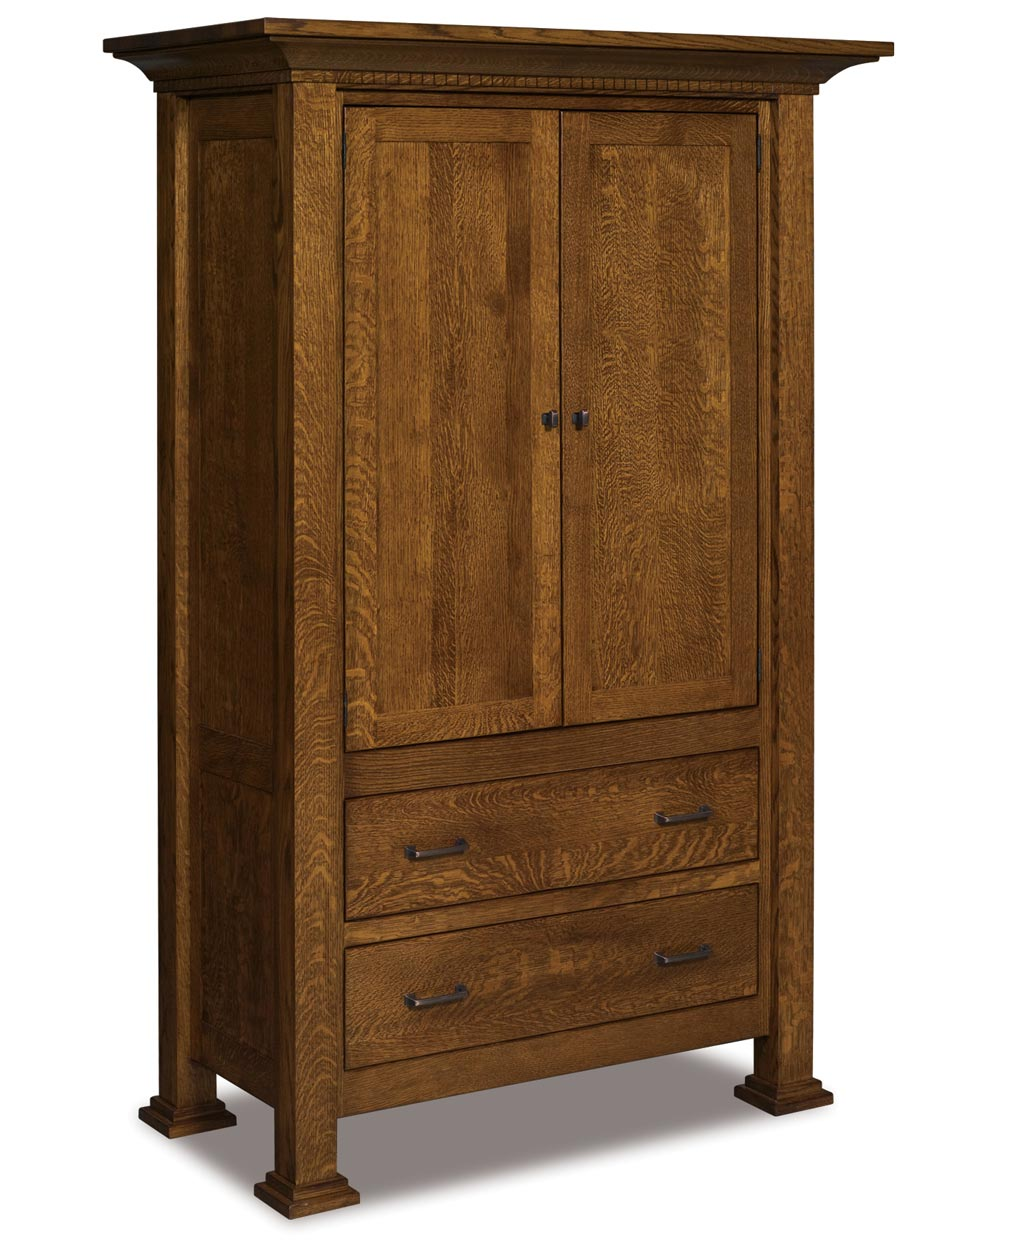 armoire armoires 2020 00 empire best free home. Black Bedroom Furniture Sets. Home Design Ideas